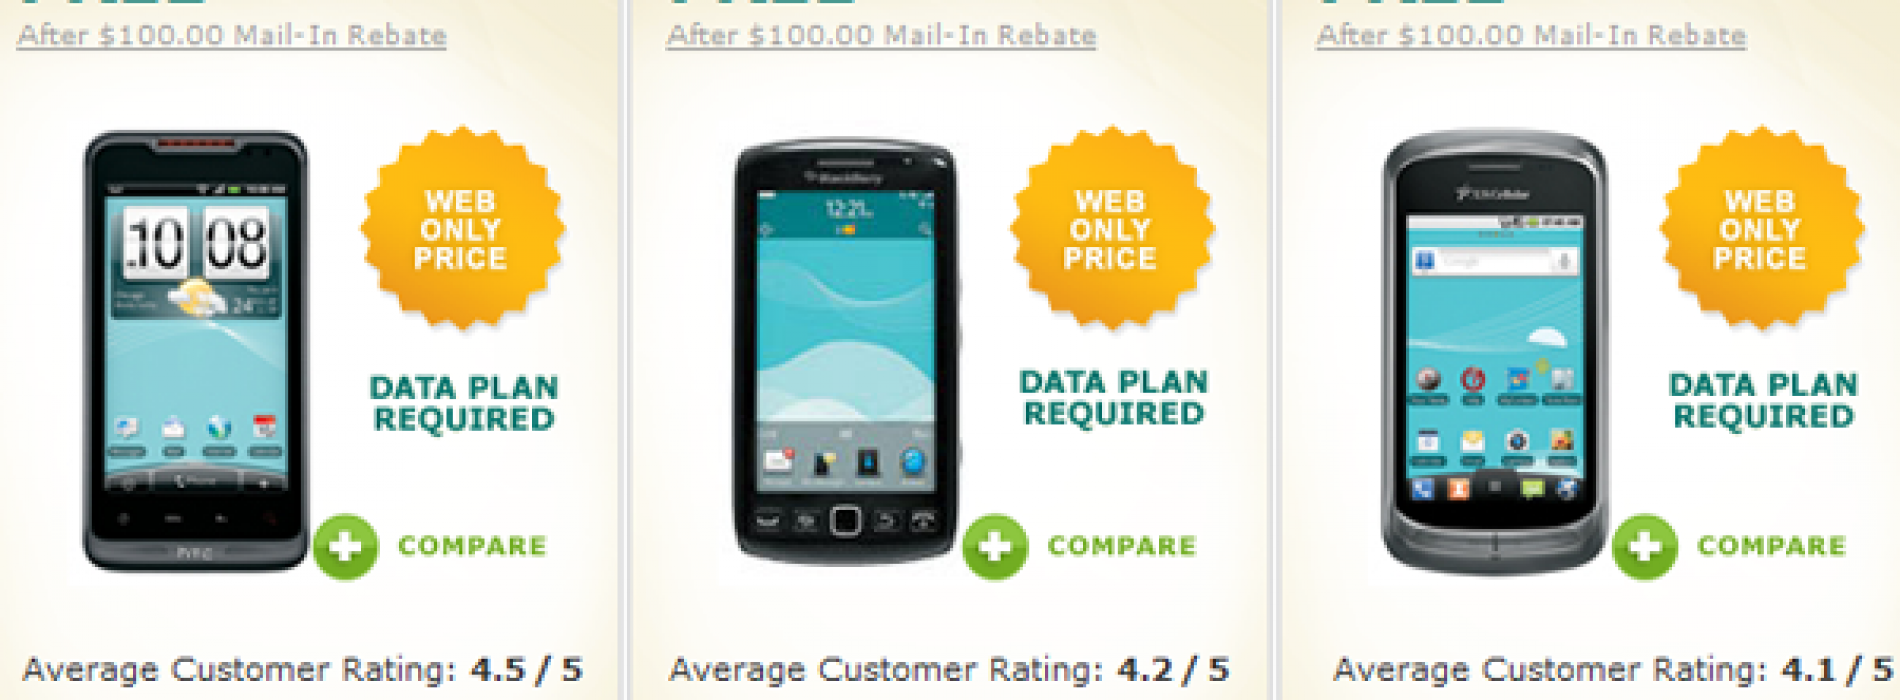 U.S. Cellular's Cyber Monday deal features free Android phones